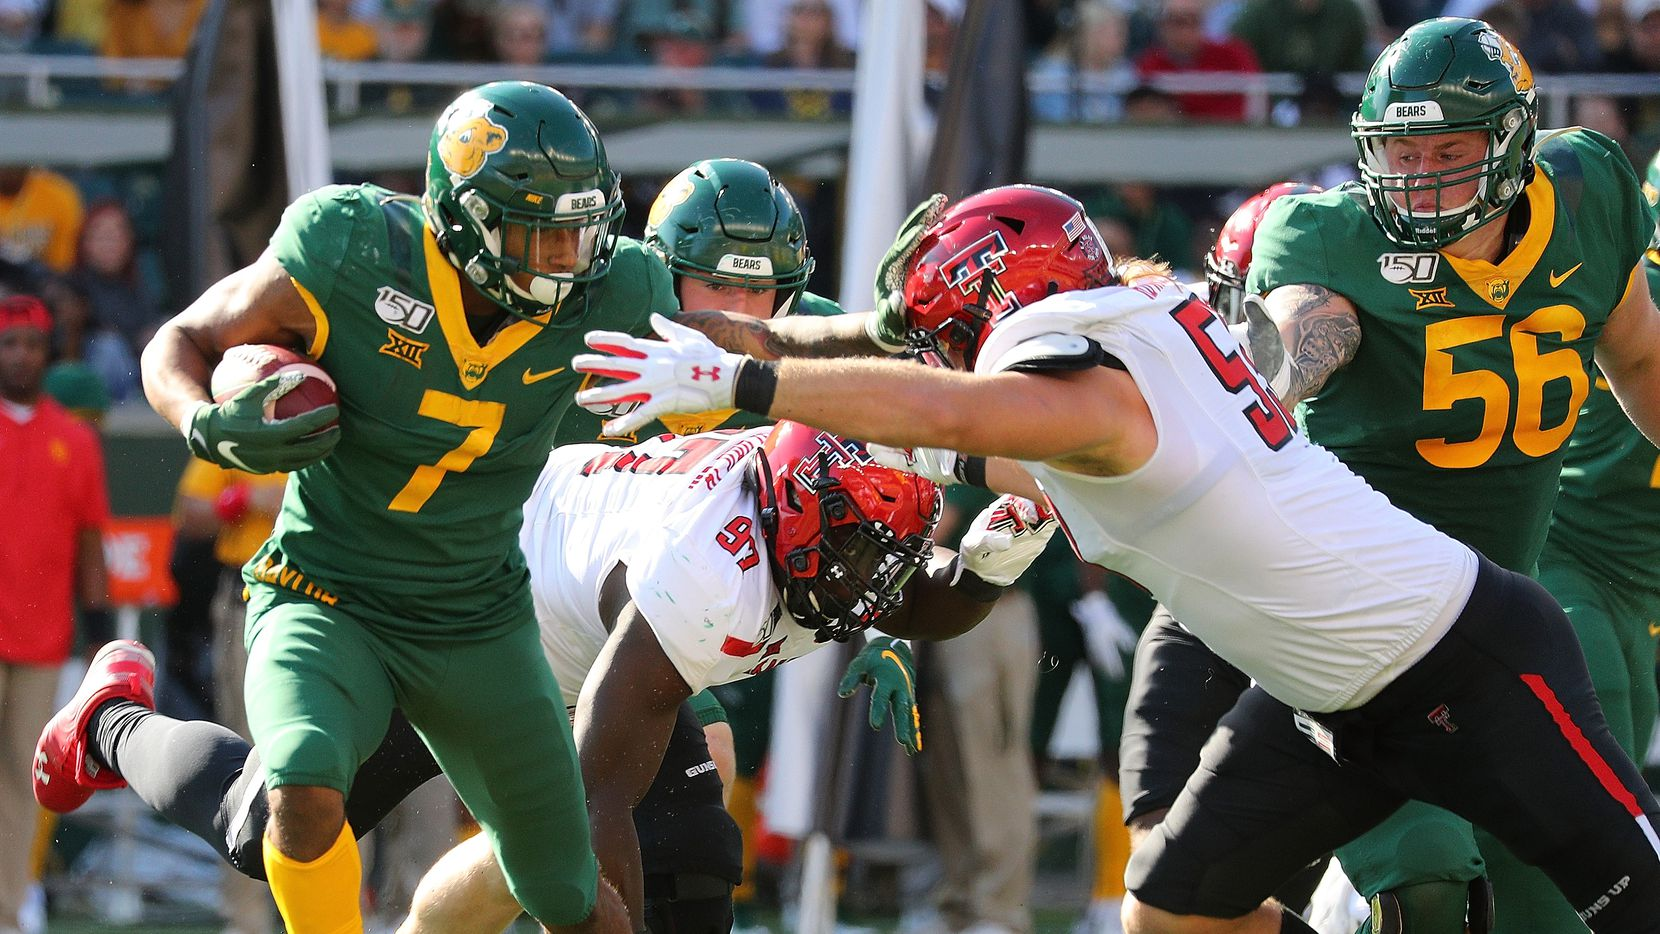 WACO, TEXAS - OCTOBER 12: John Lovett #7 of the Baylor Bears tries to hold off Eli Howard #53 of the Texas Tech Red Raiders in the first half on October 12, 2019 in Waco, Texas.